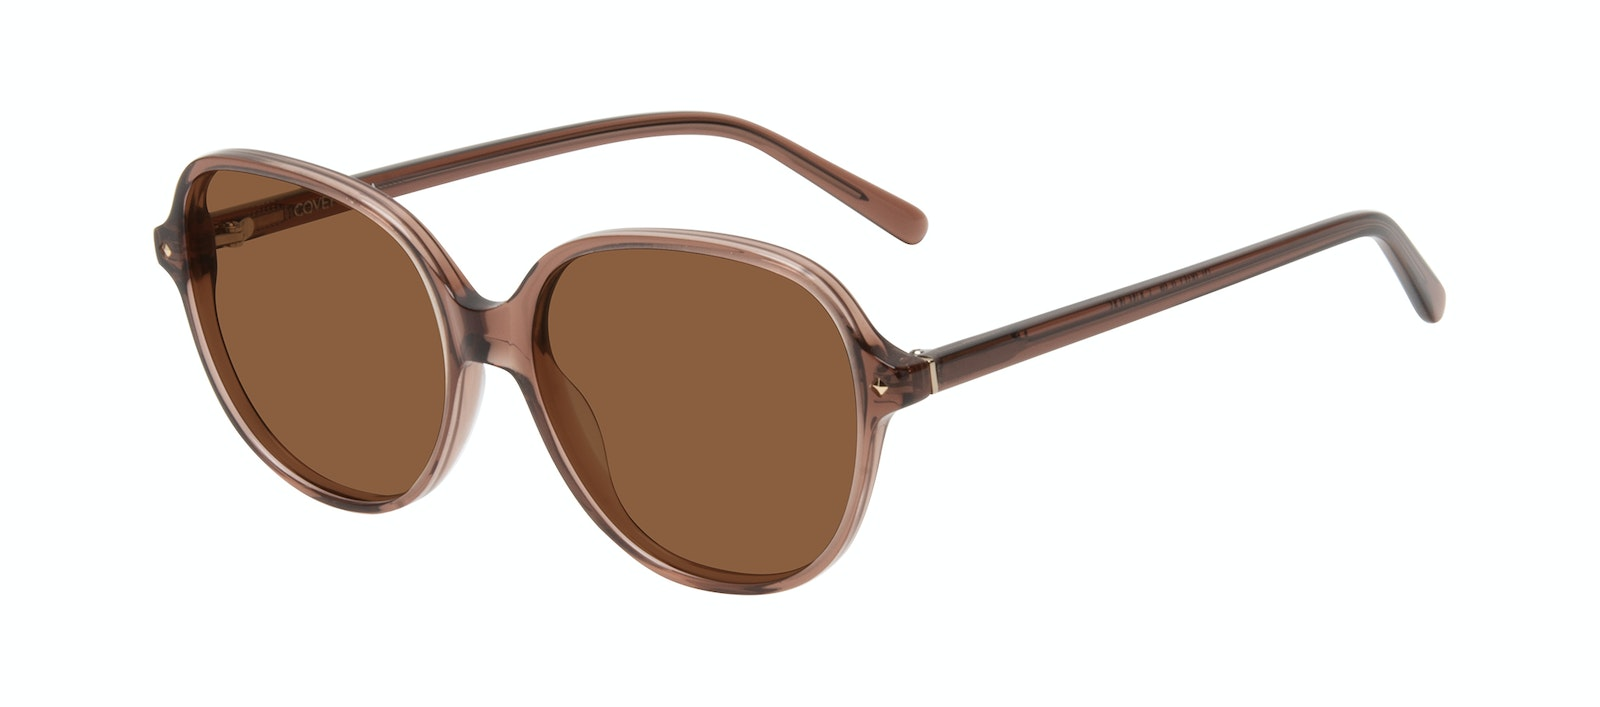 Affordable Fashion Glasses Round Sunglasses Women Covet Terra Tilt